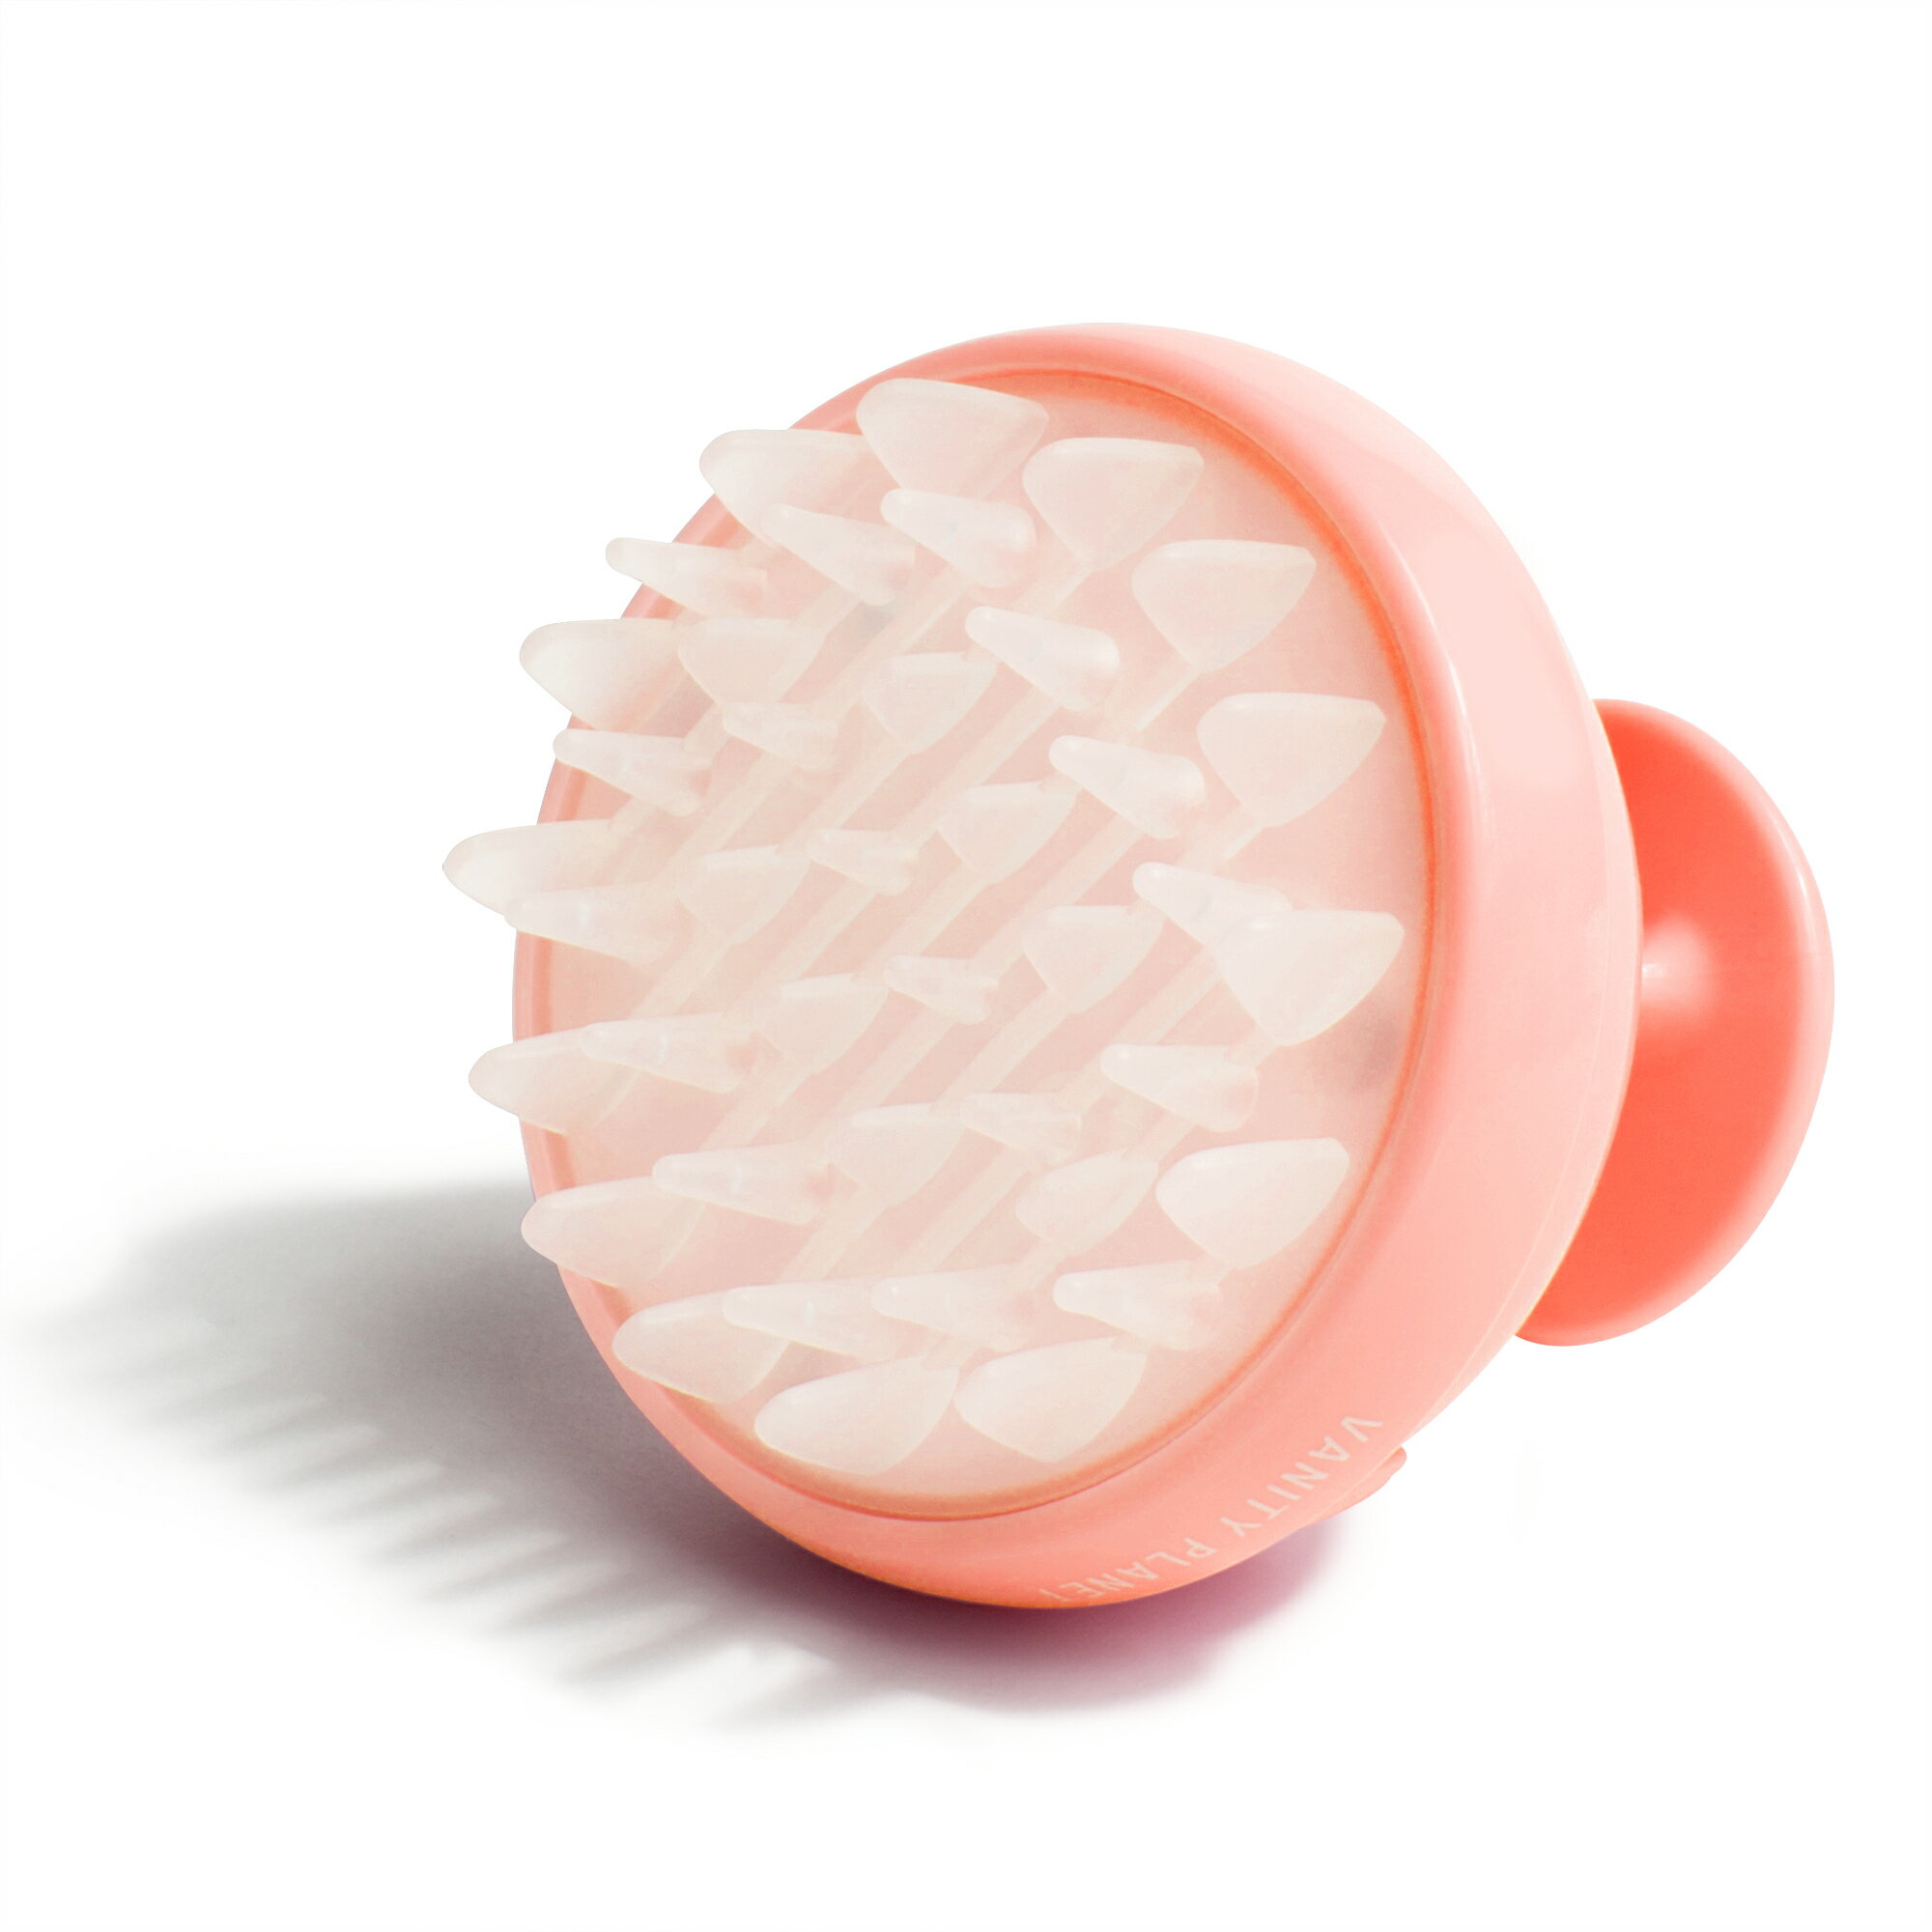 Groove Vibrating Scalp Massager - Just Peachy 0